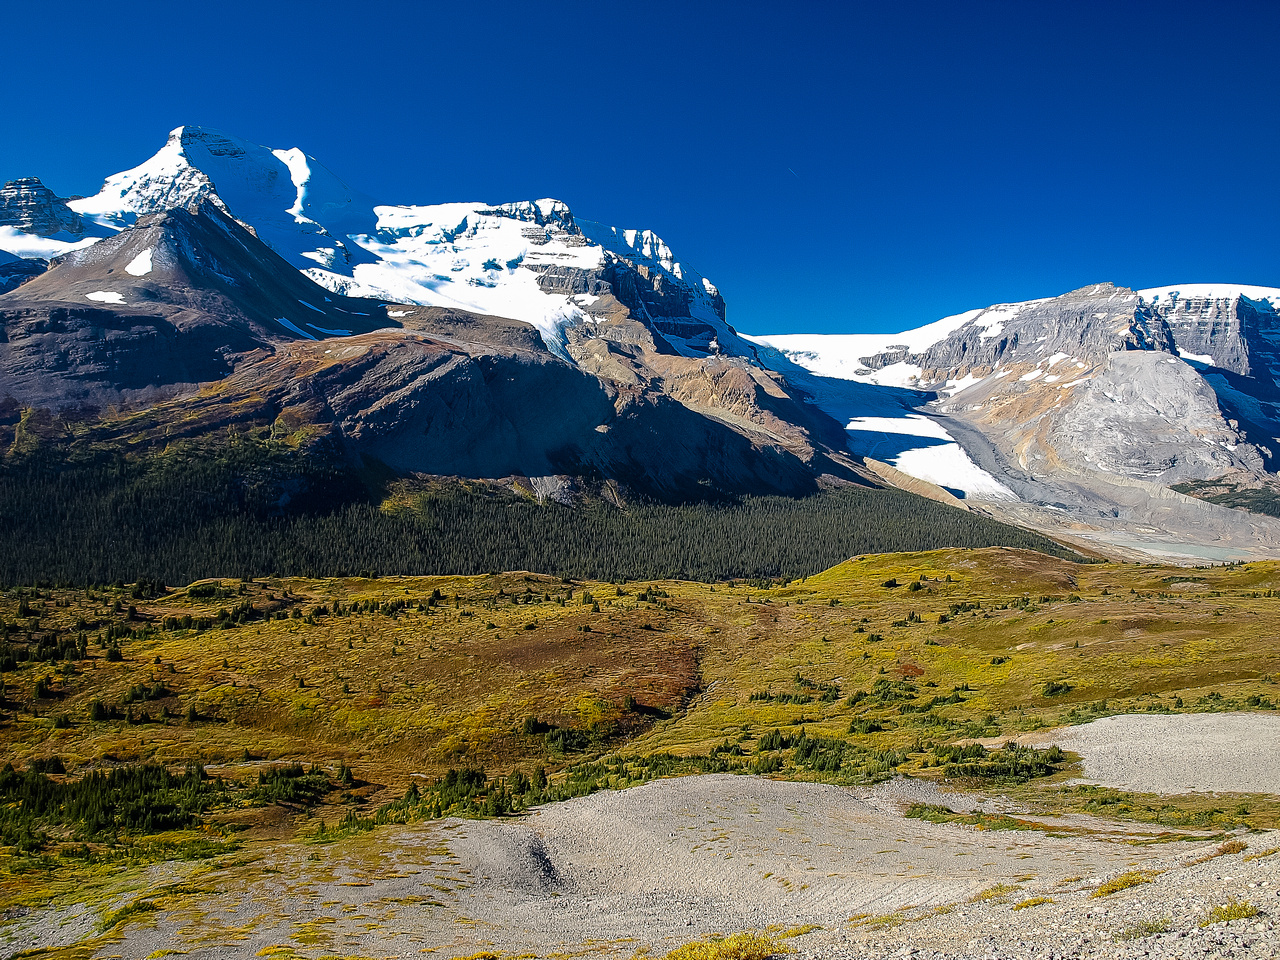 Looking back across Wilcox Pass towards Athabasca (L) and Snow Dome (R) with the Athabasca Glacier in between.